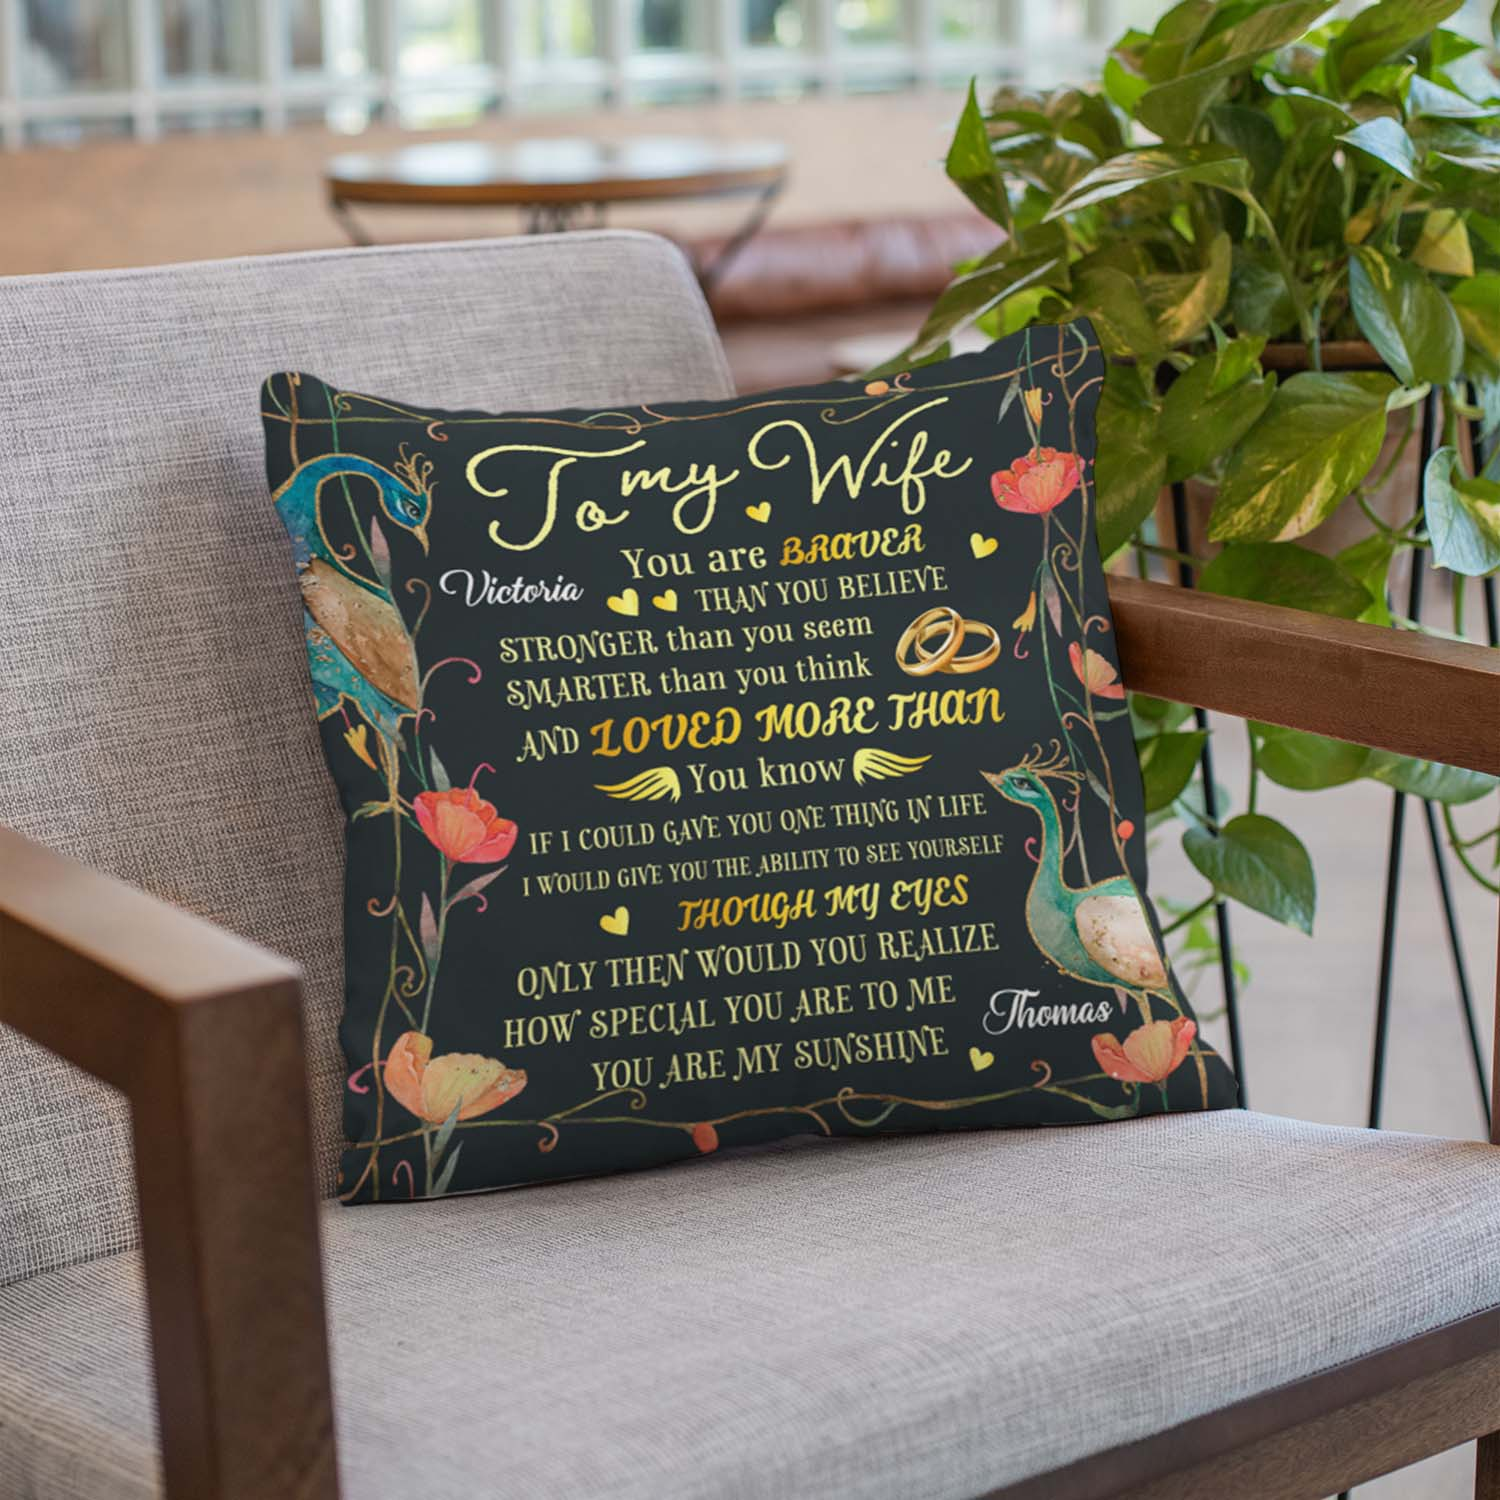 To My Wife Custom Throw Pillow Personalized With Name Like A Sweet Letter To Wife